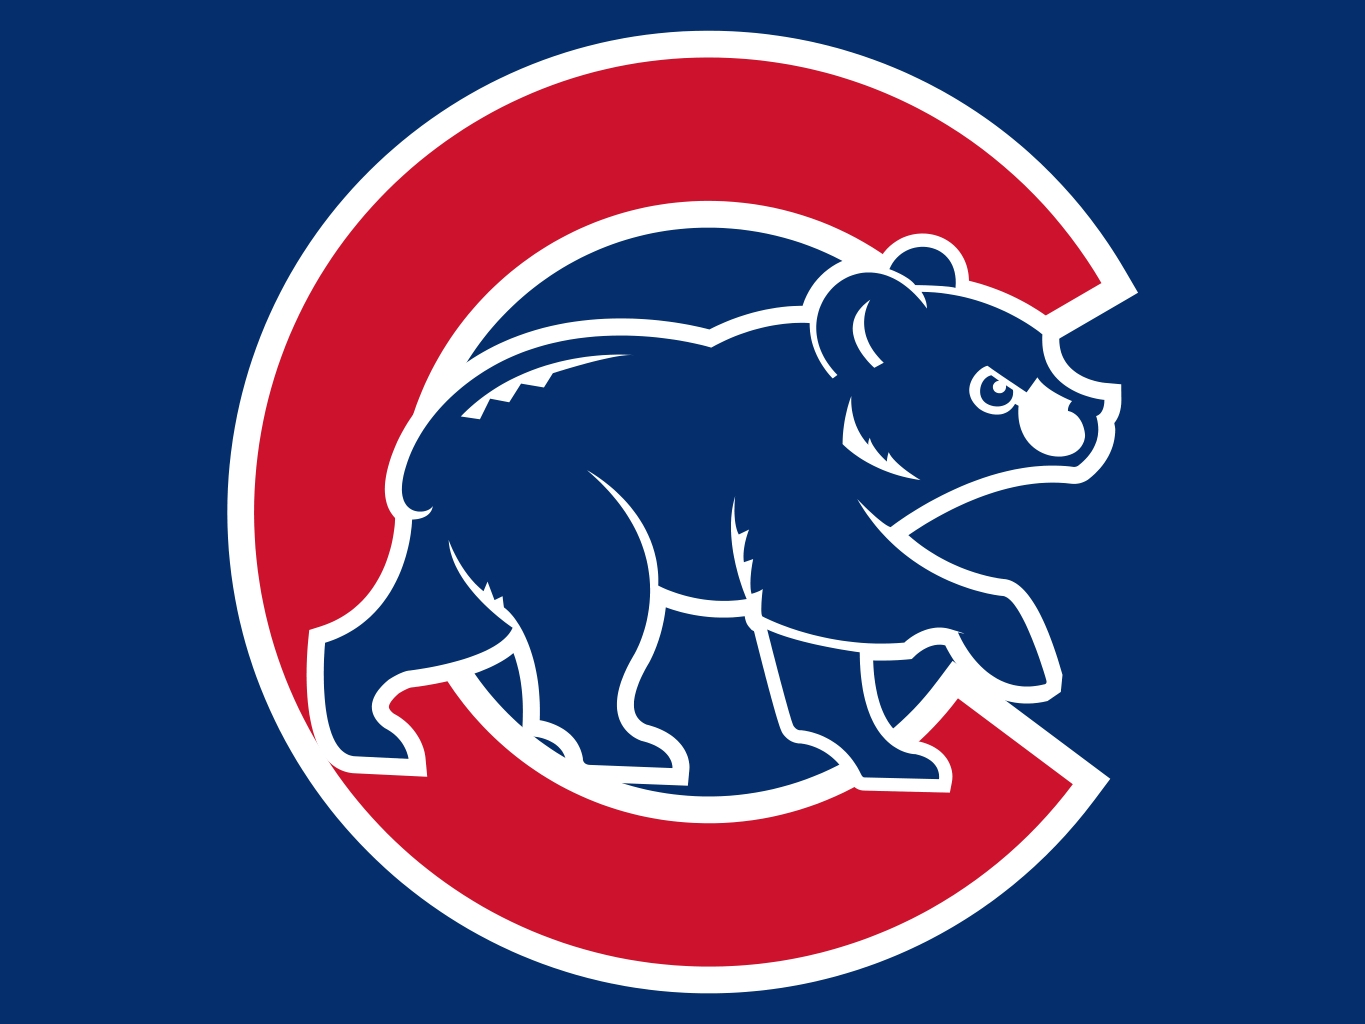 Chicago Cubs Backgrounds, Compatible - PC, Mobile, Gadgets| 1365x1024 px